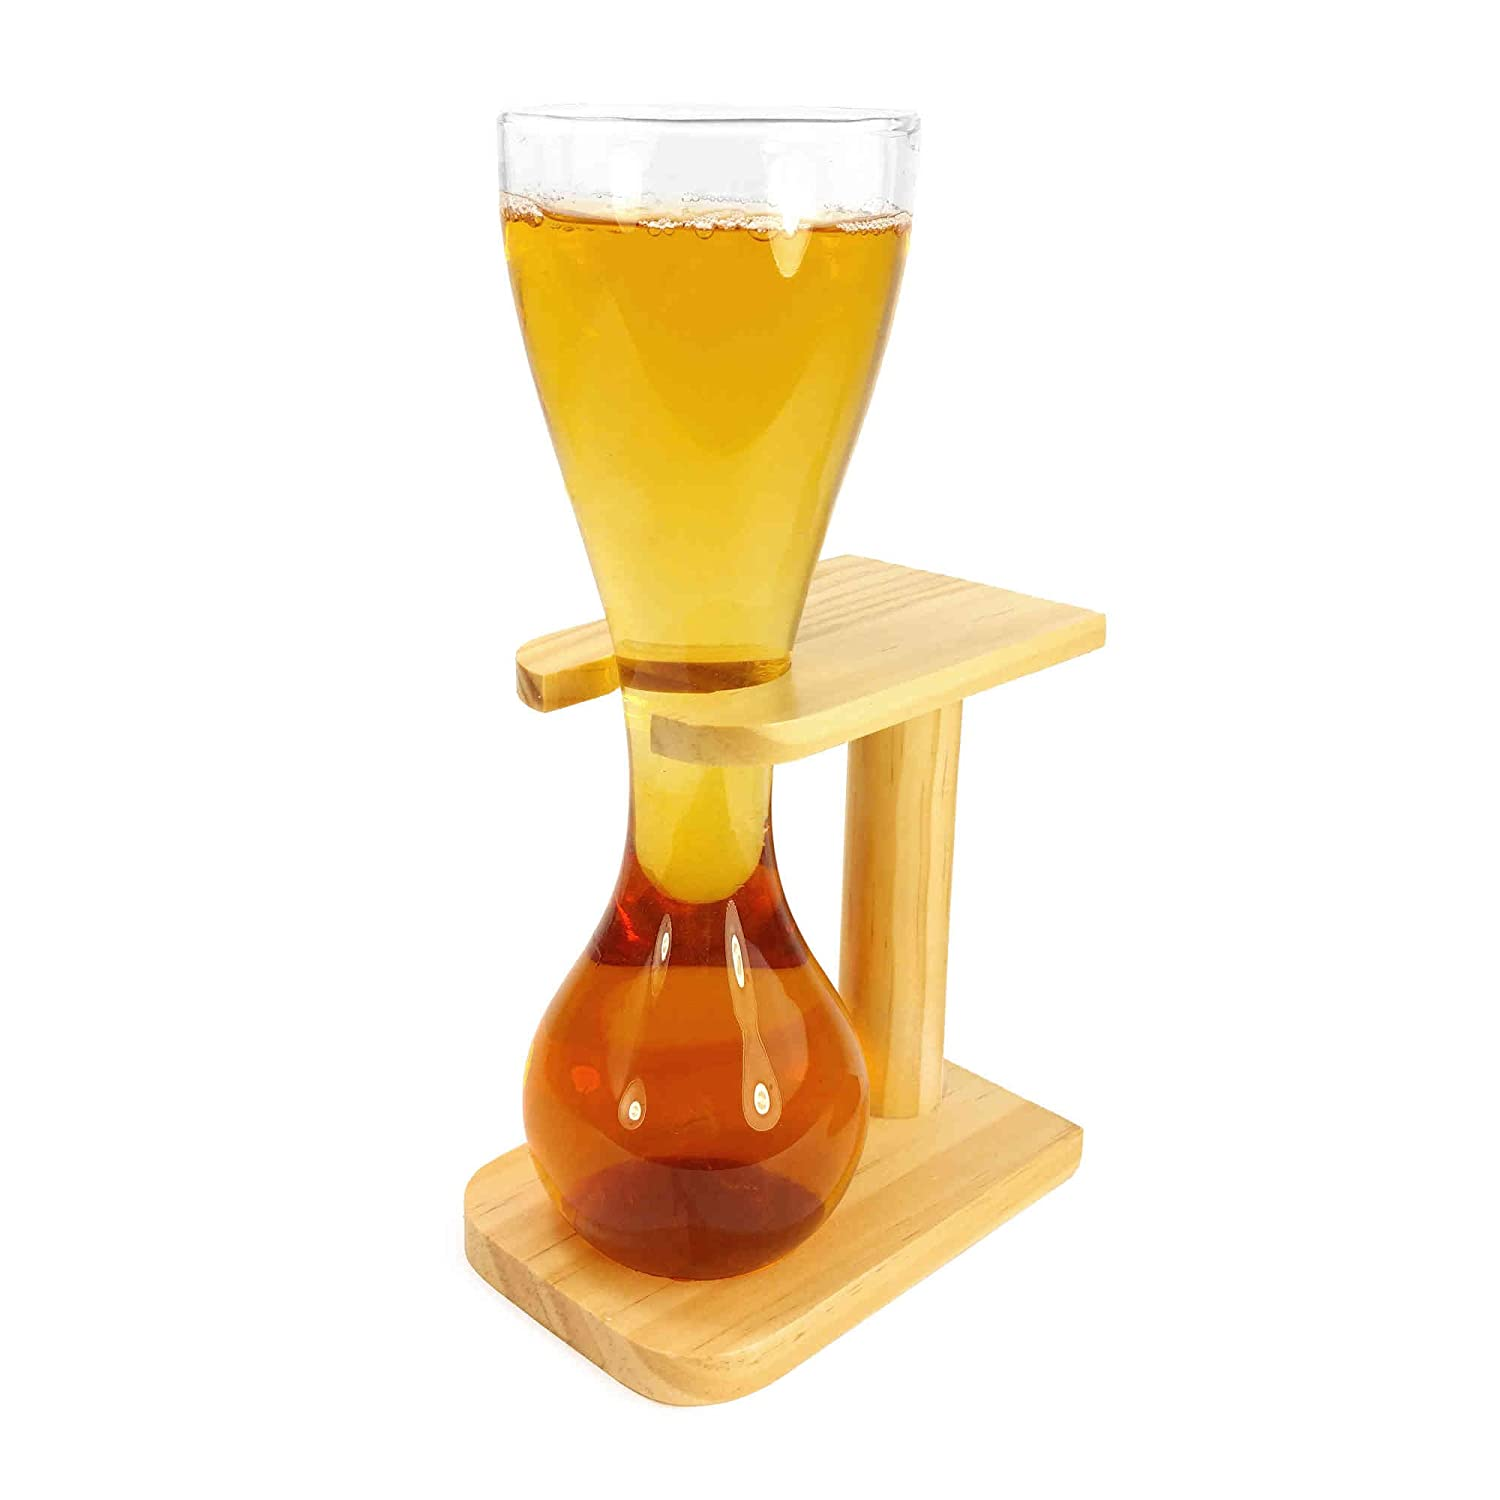 Stag Gift Novelty TUFF LUV Personalised Quarter Yard of Beer//Lager Ale with Stand Glass